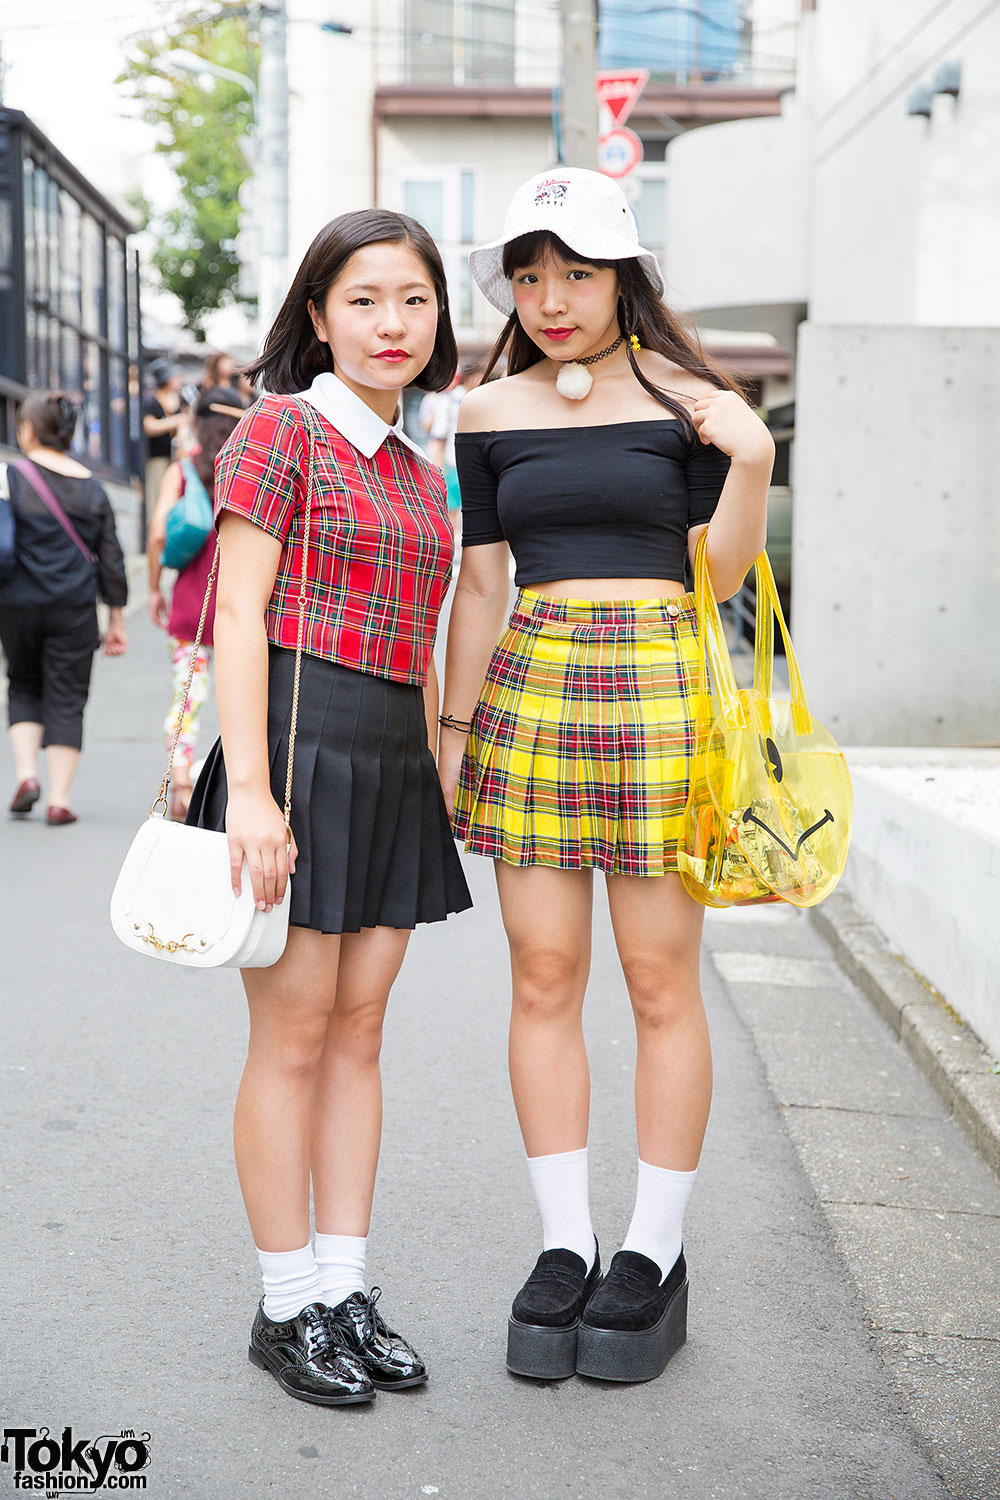 Pleated Skirts Plaid From Bubbles Harajuku Aymmy In The Batty Girls